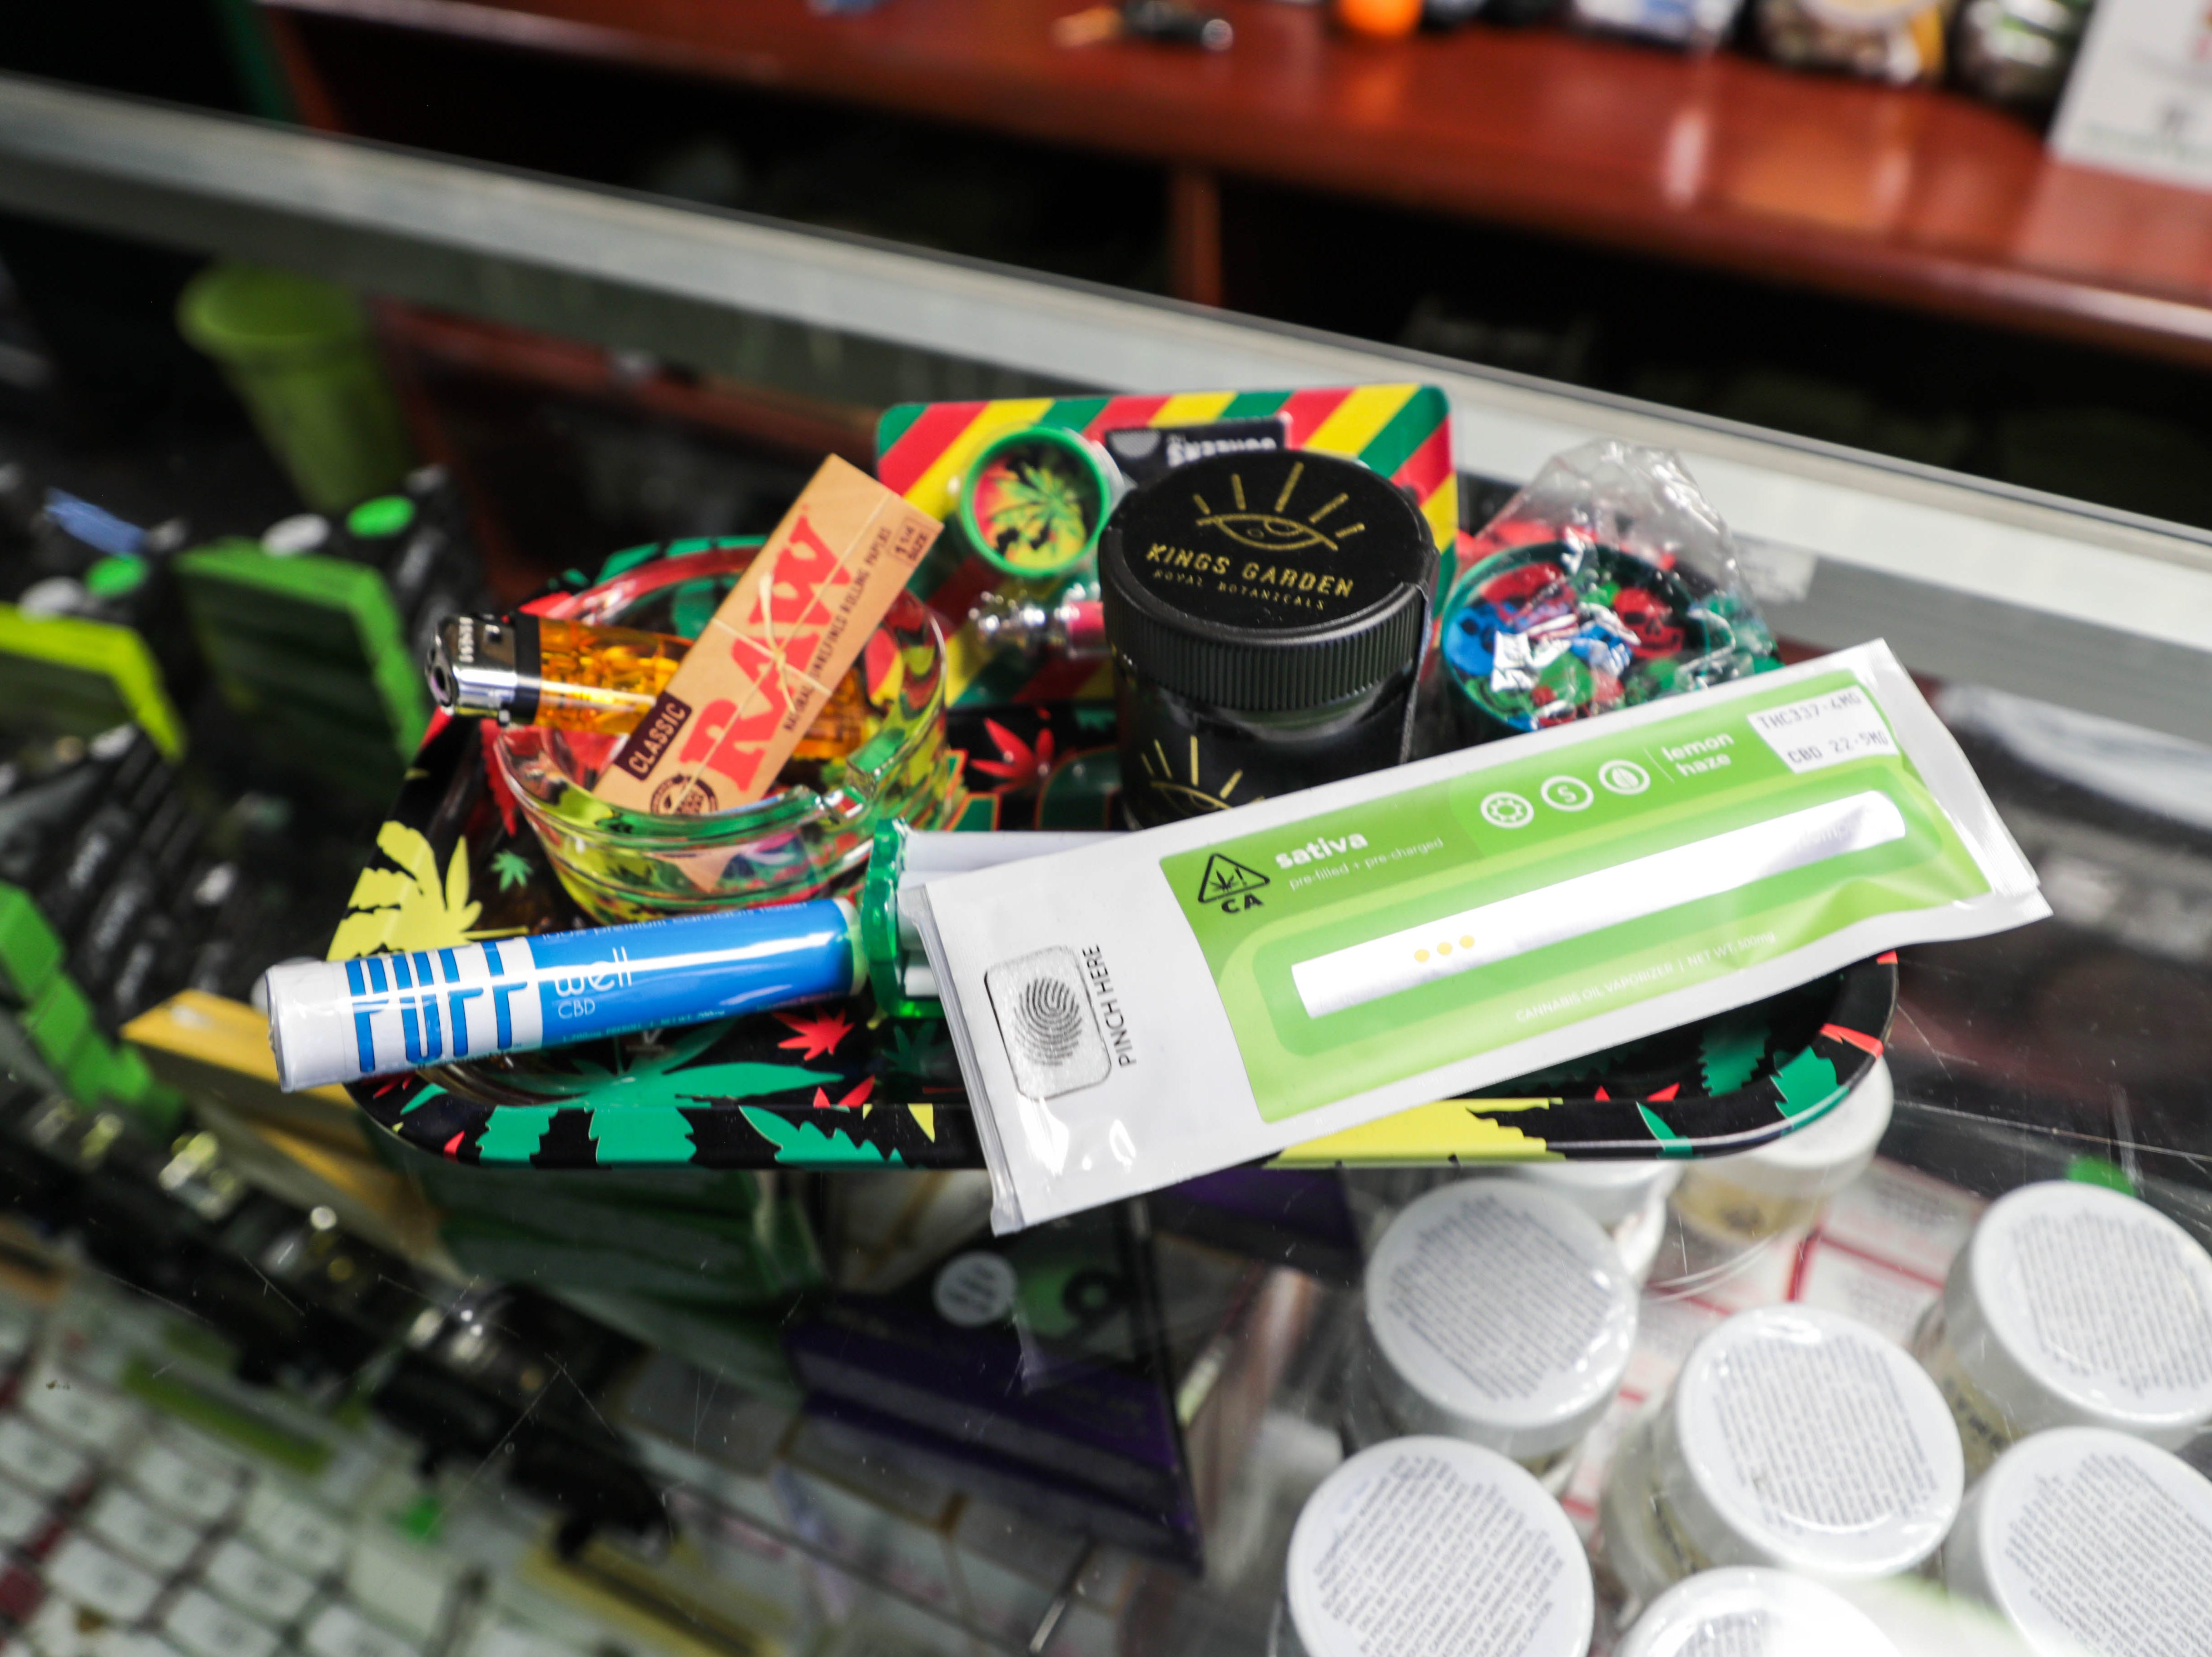 Marijuana products sit on the counter at The 420 Lounge on Thursday, January 17, 2019. The 420 Lounge is the first legal cannabis smoking lounge in Palm Springs, Calif.